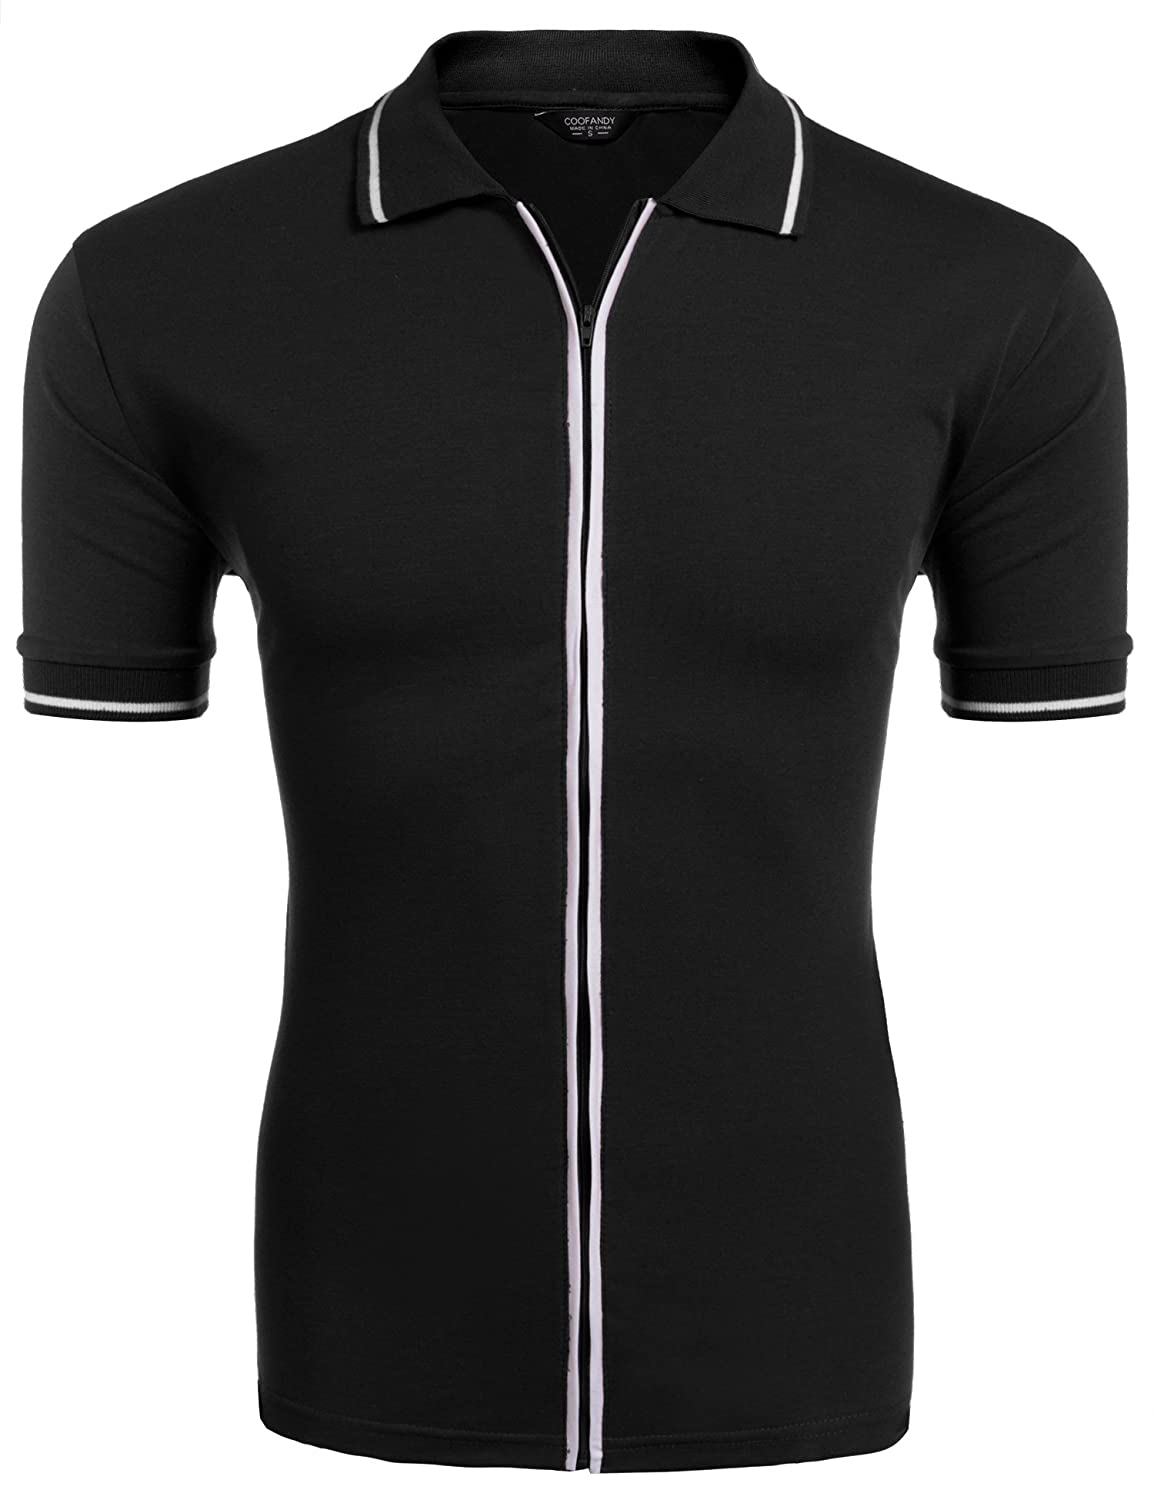 1960s Men's Clothing COOFANDY Mens Full Zip Polo Shirt Slim Fit Casual Cotton Contrast T Shirts $19.99 AT vintagedancer.com